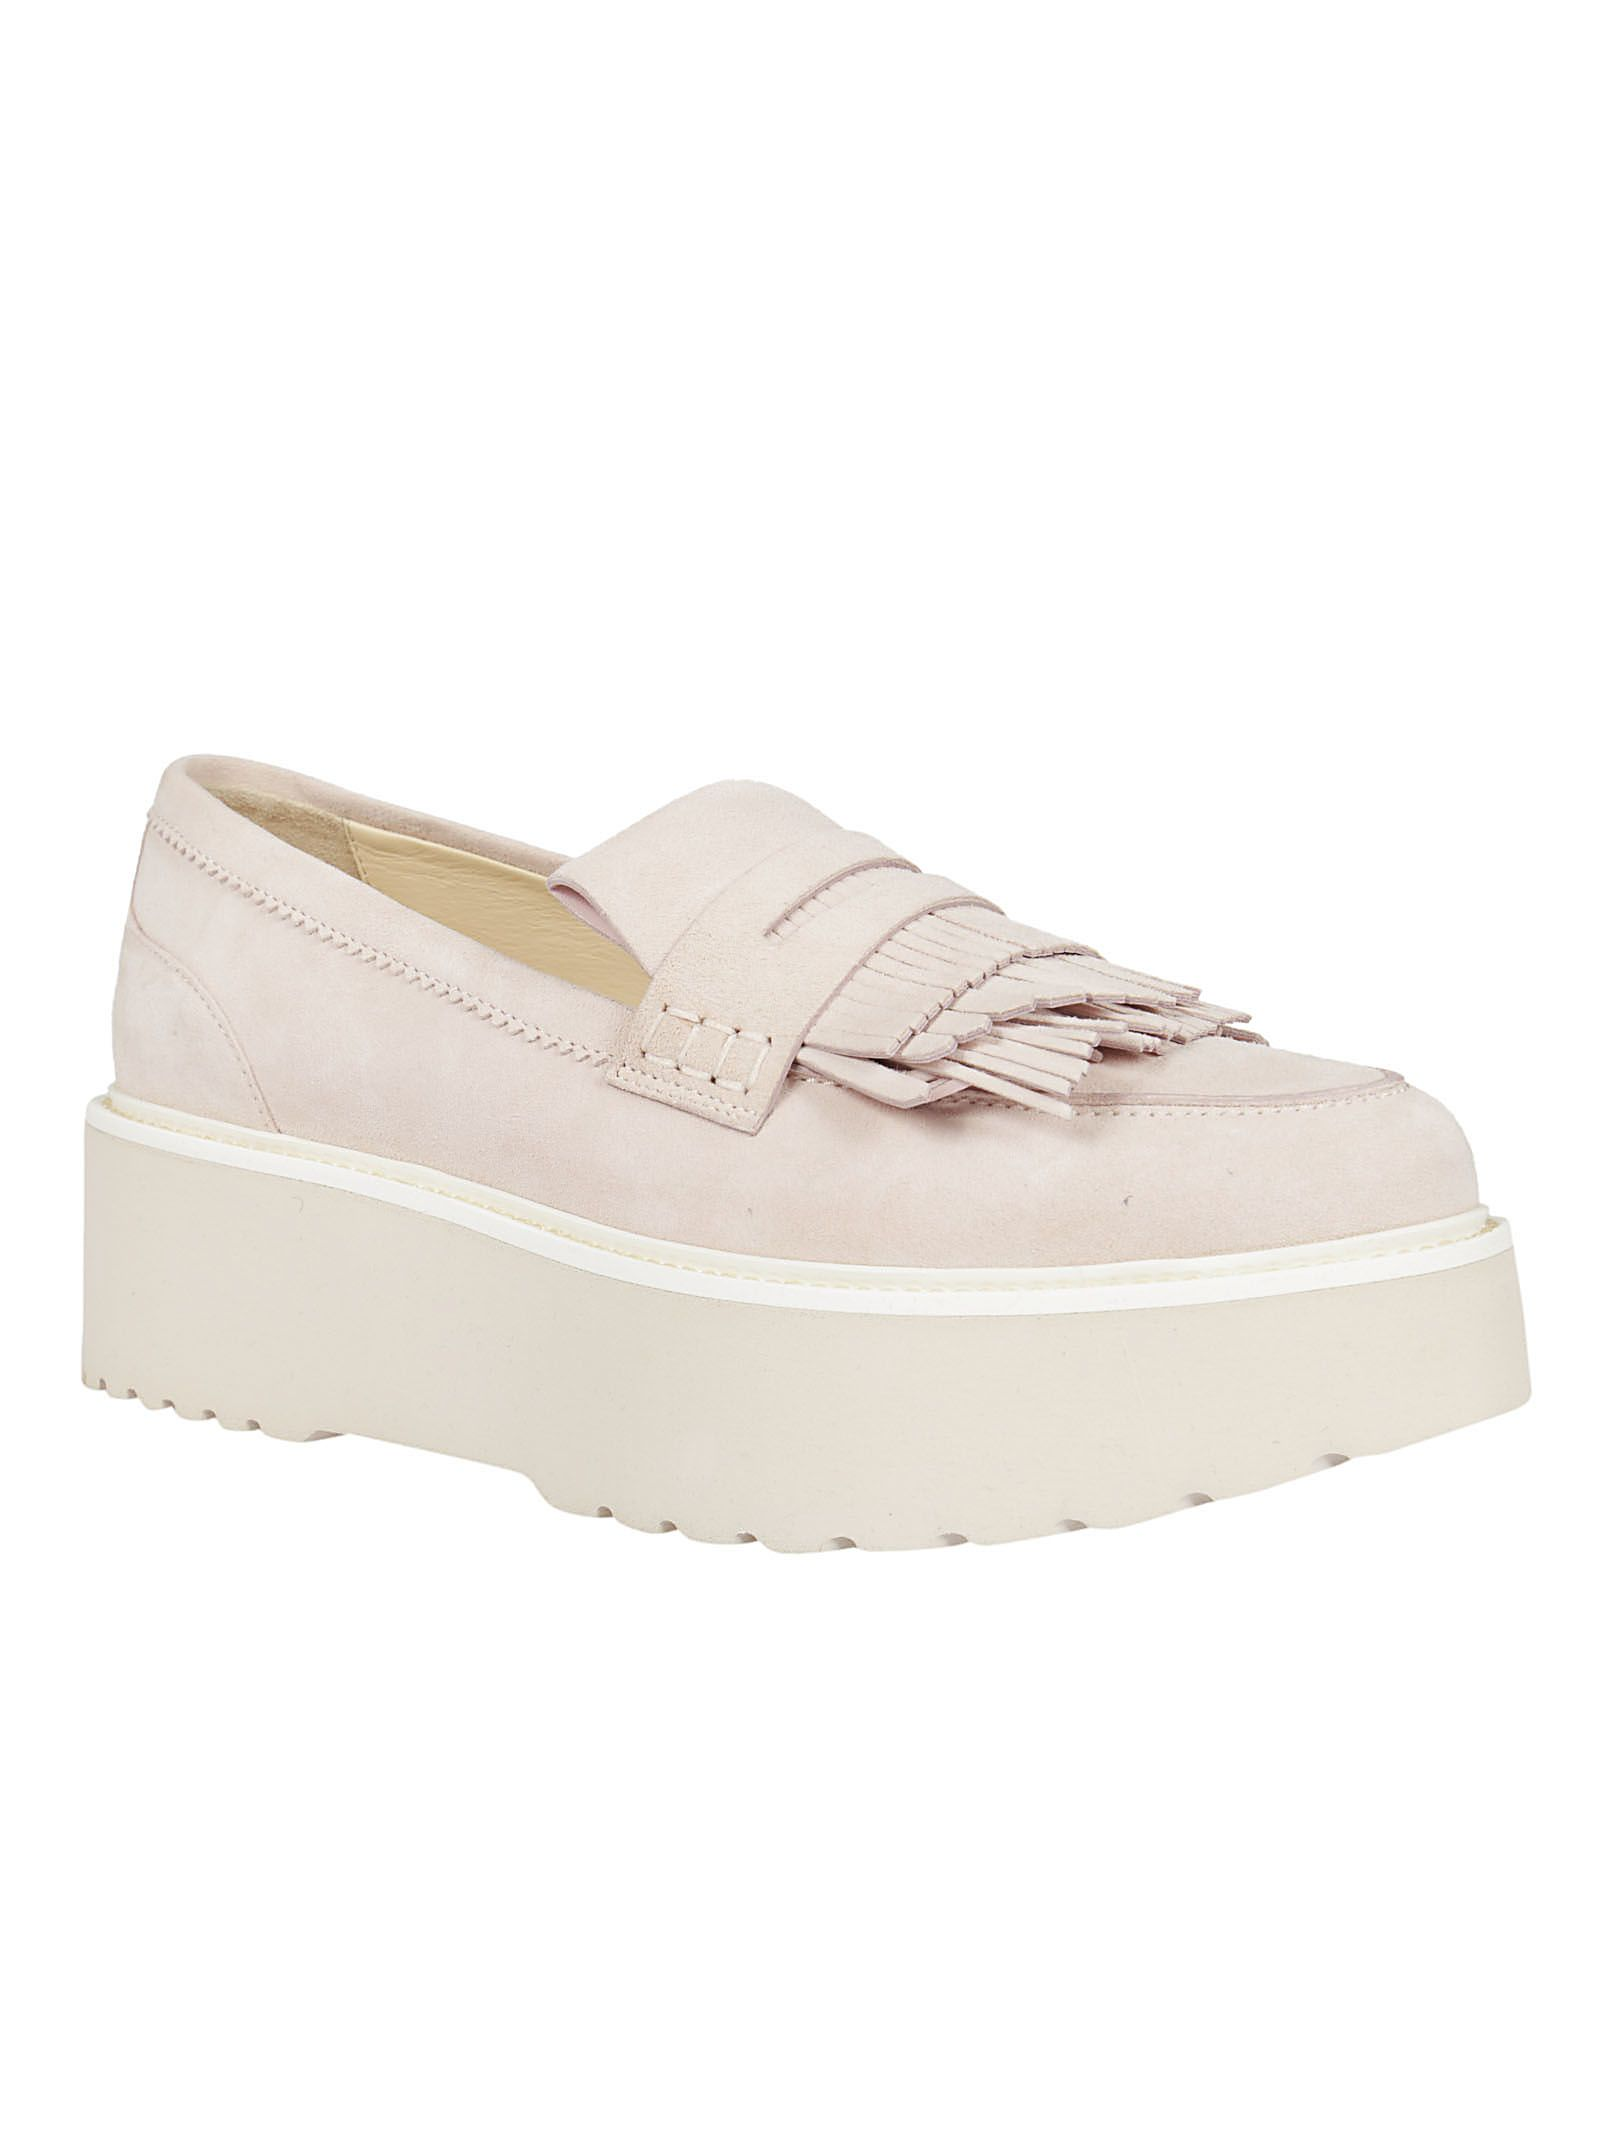 With Paypal Free Shipping Buy Cheap Buy Hogan Urban Loafers Discount Shop pKHzuuHwy